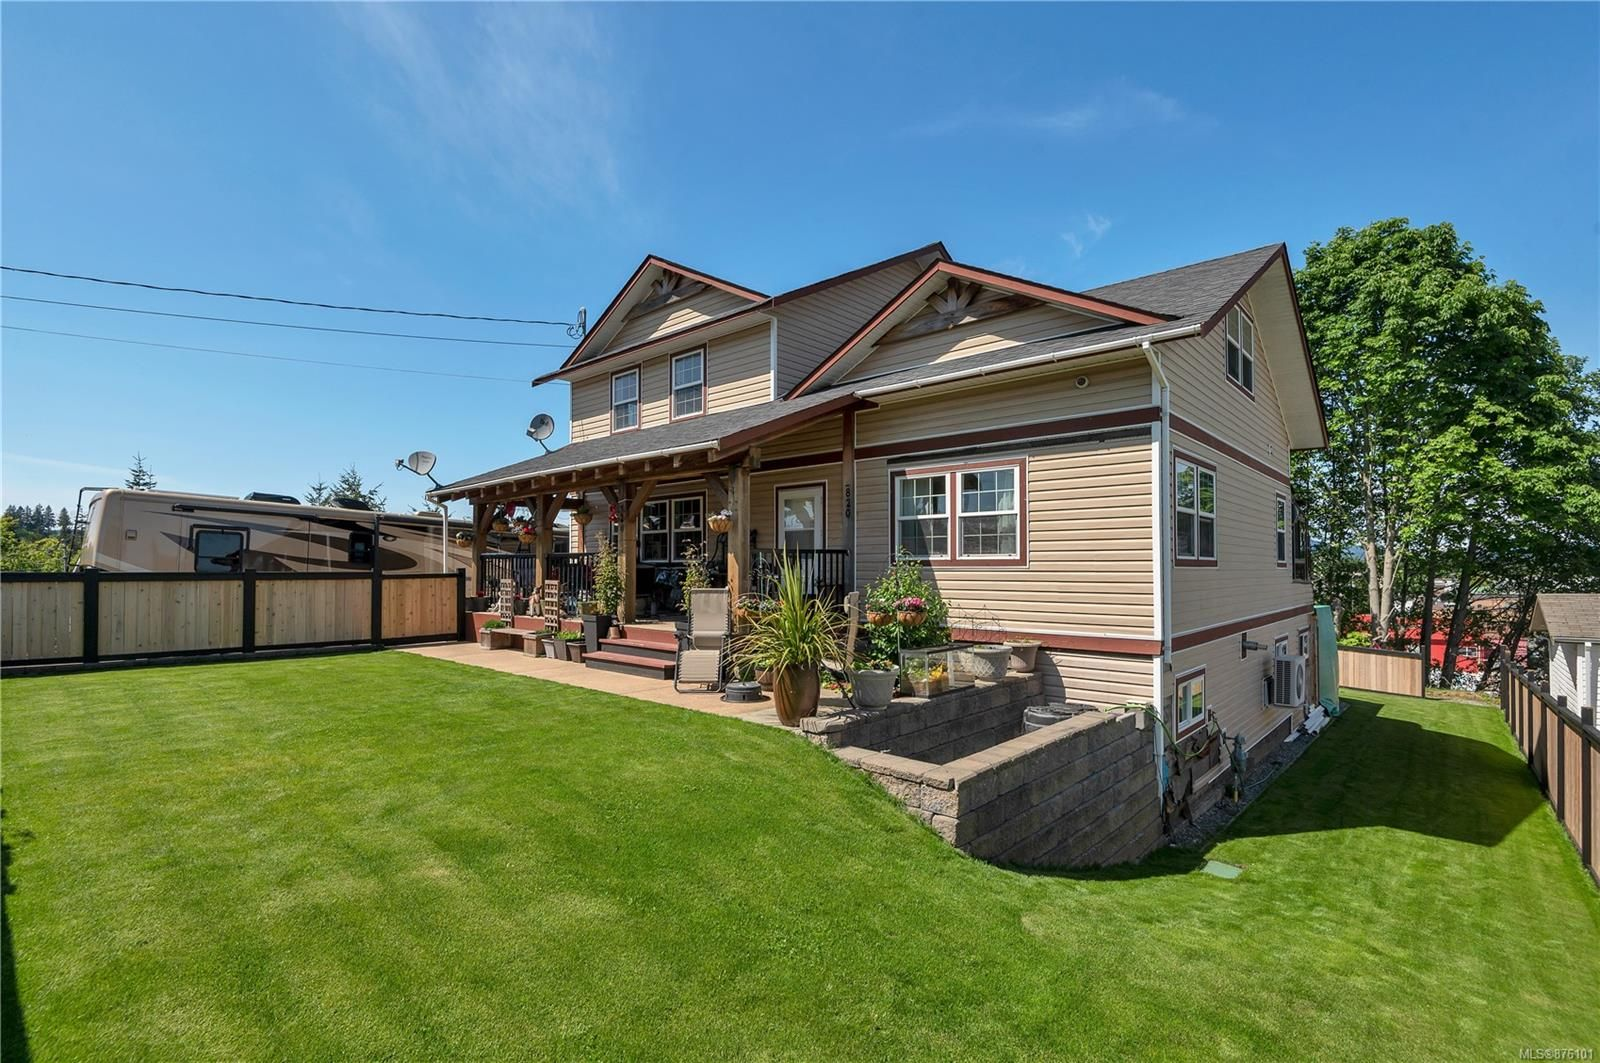 Main Photo: 820 10th Ave in : CR Campbell River Central House for sale (Campbell River)  : MLS®# 876101